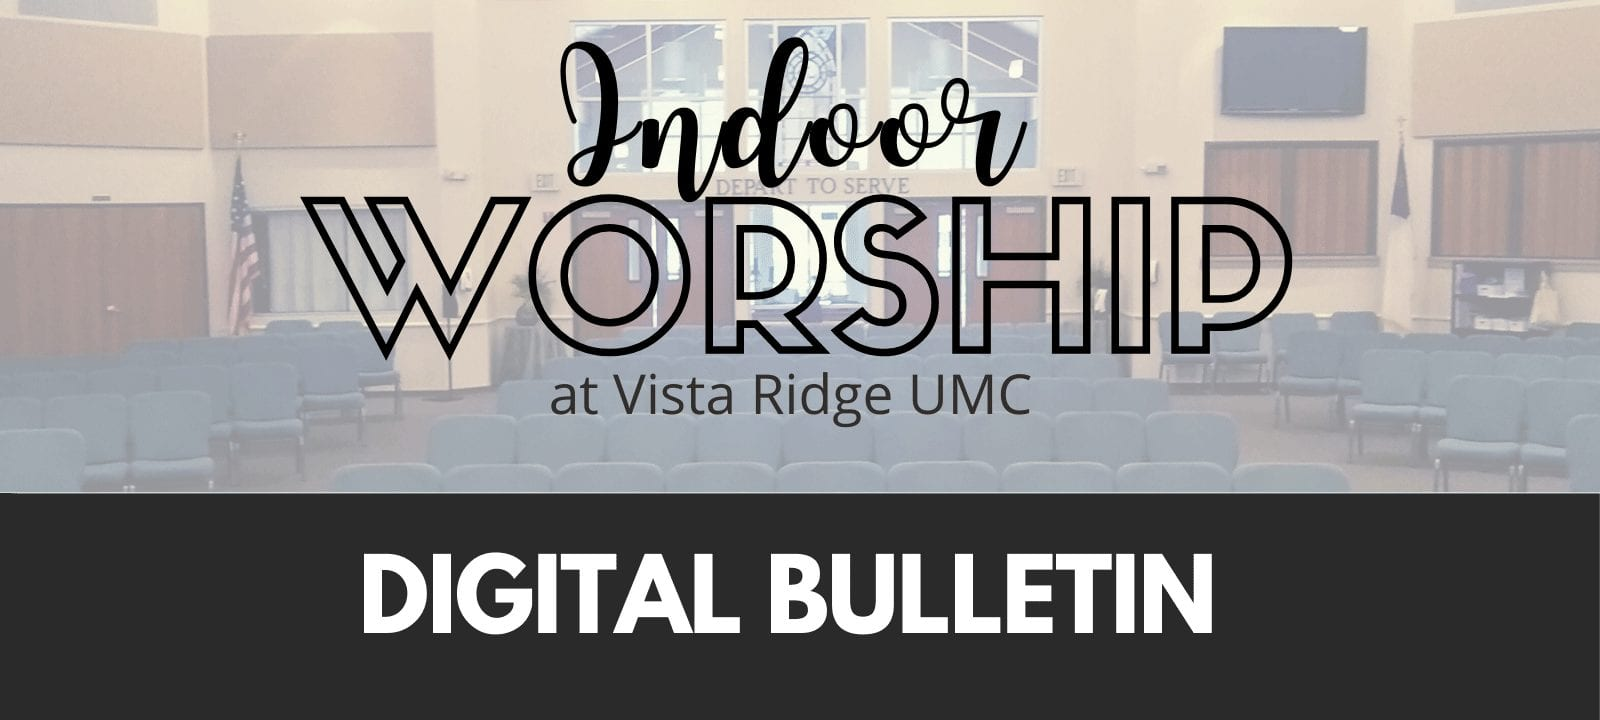 Indoor Worship Digital Bulletin